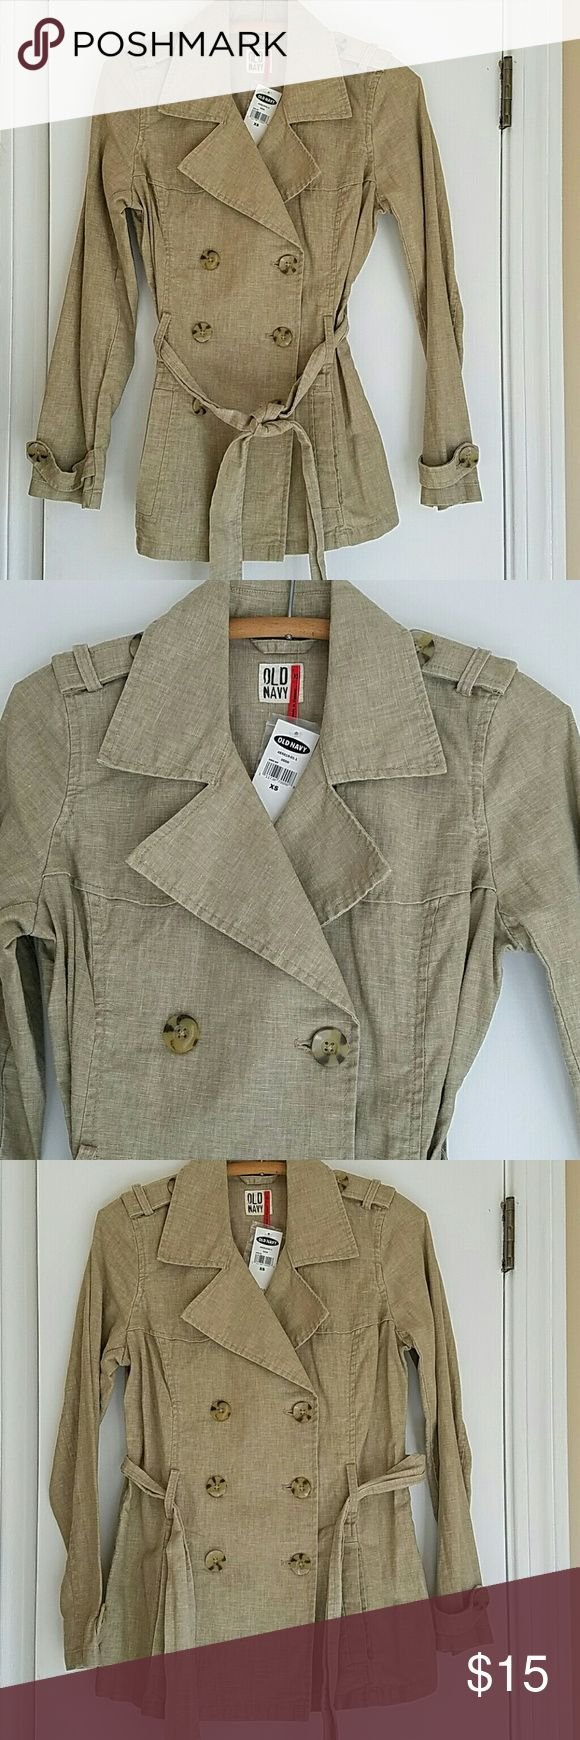 NWT Old Navy Linen Safari Trench Coat Brand new linen belted safari jacket in tan khaki color. Perfect with jeans,  pencil skirt or even over a dress. Unlined and lightweight perfect for spring. Old Navy Jackets & Coats Trench Coats